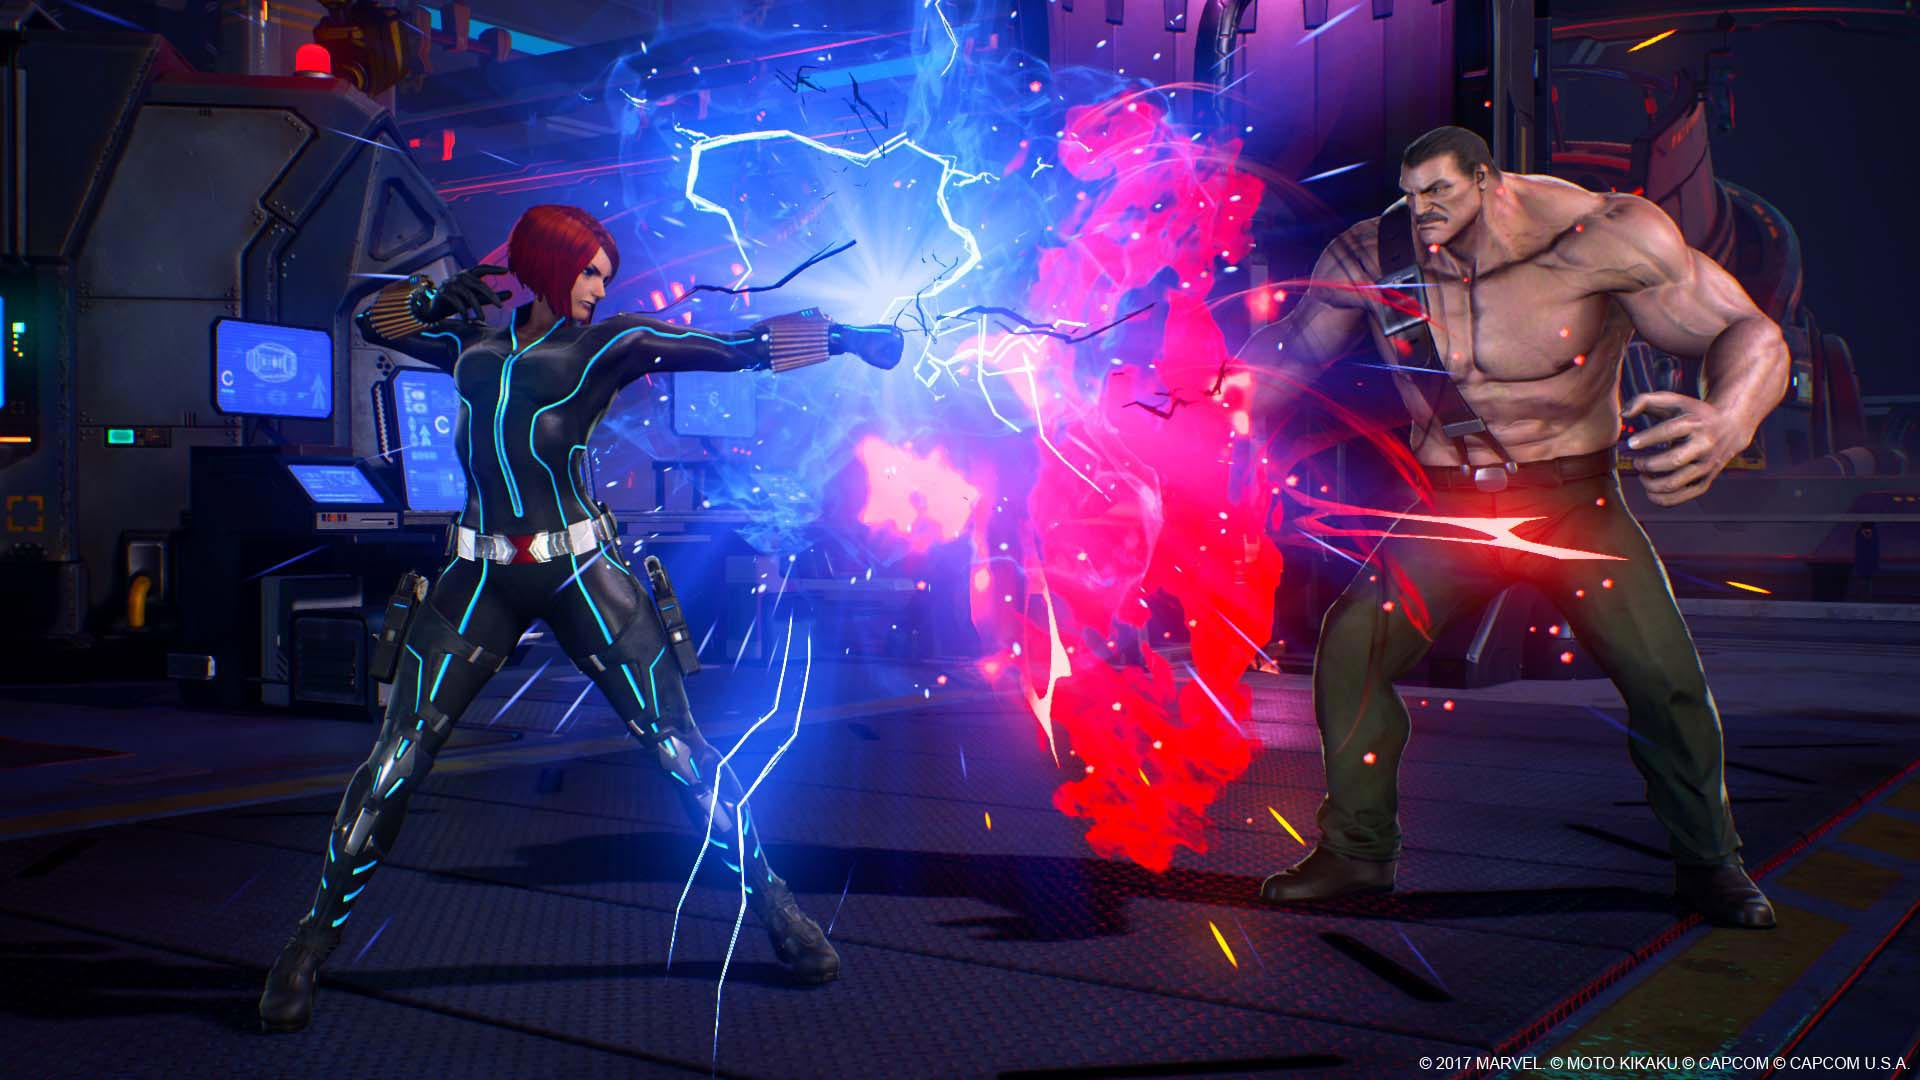 Venom, Black Widow, and Winter Solider in Marvel vs. Capcom: Infinite screenshots 8 out of 13 image gallery